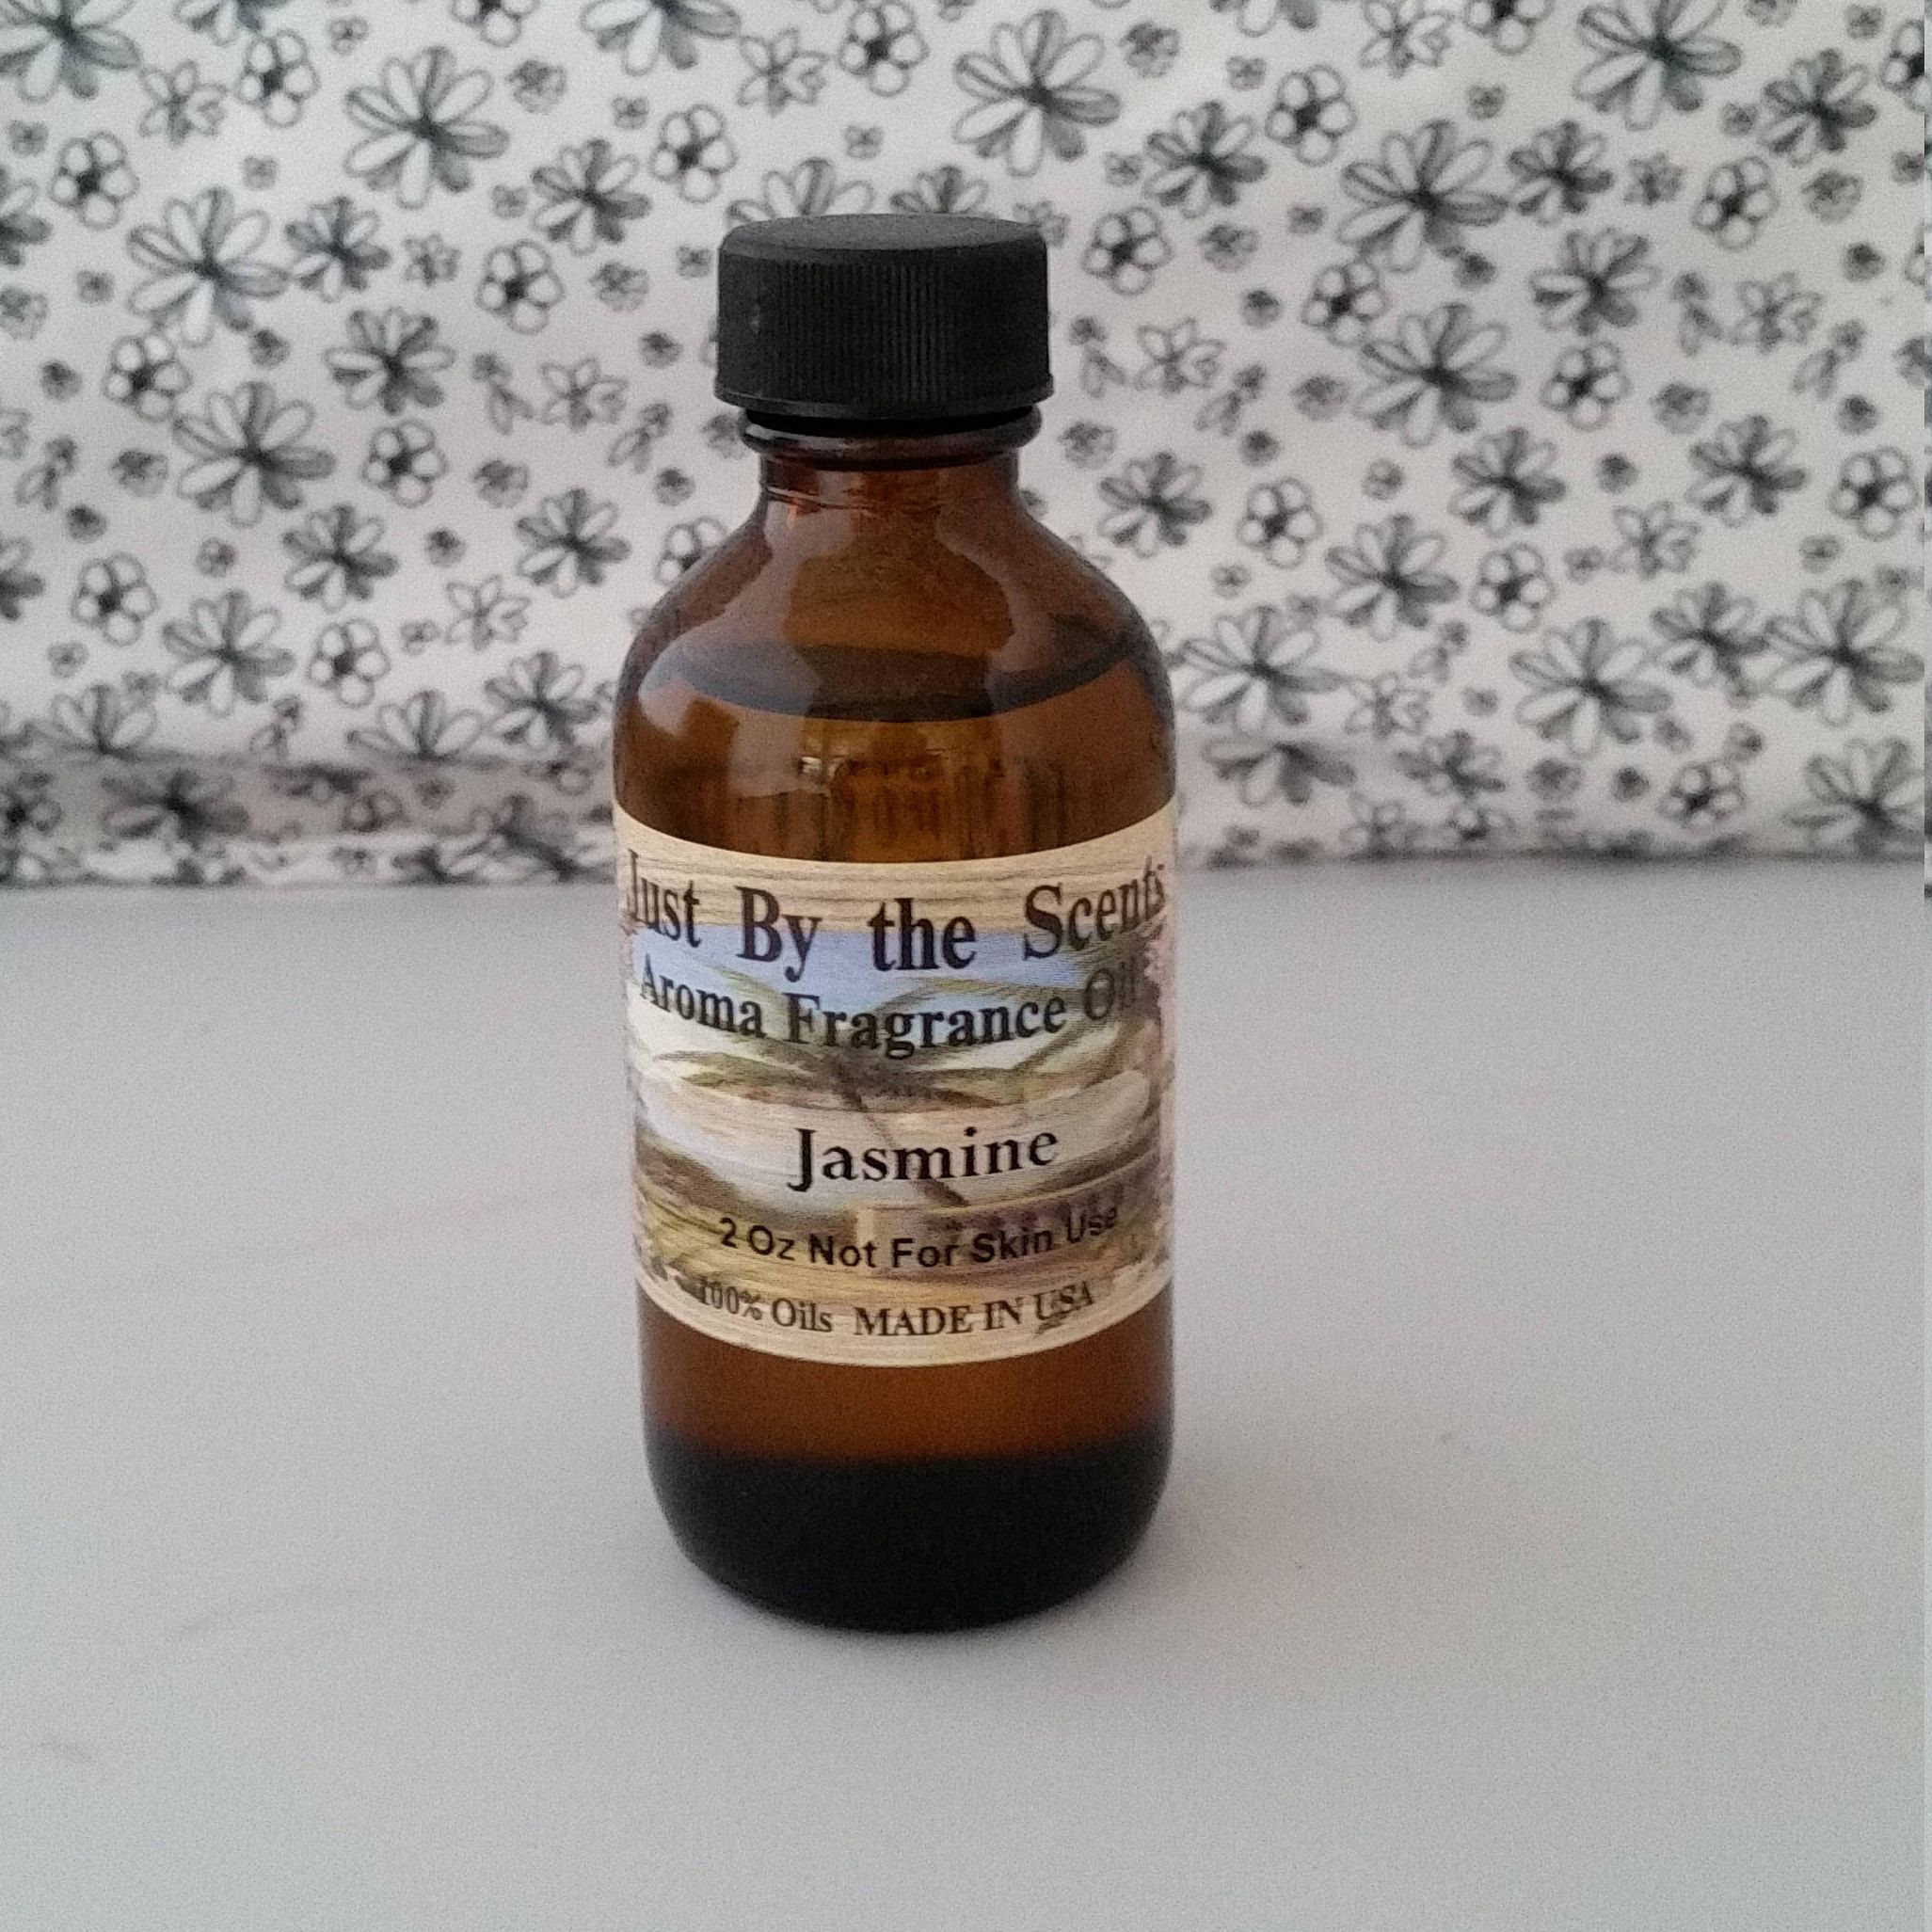 1 Jasmine Aroma Fragrance Oil Just By The Scents 2 Ounce Bottle 100 Oil Made In Usa By Gailsgifthut On Etsy Fragrance Oil Scents Fragrance